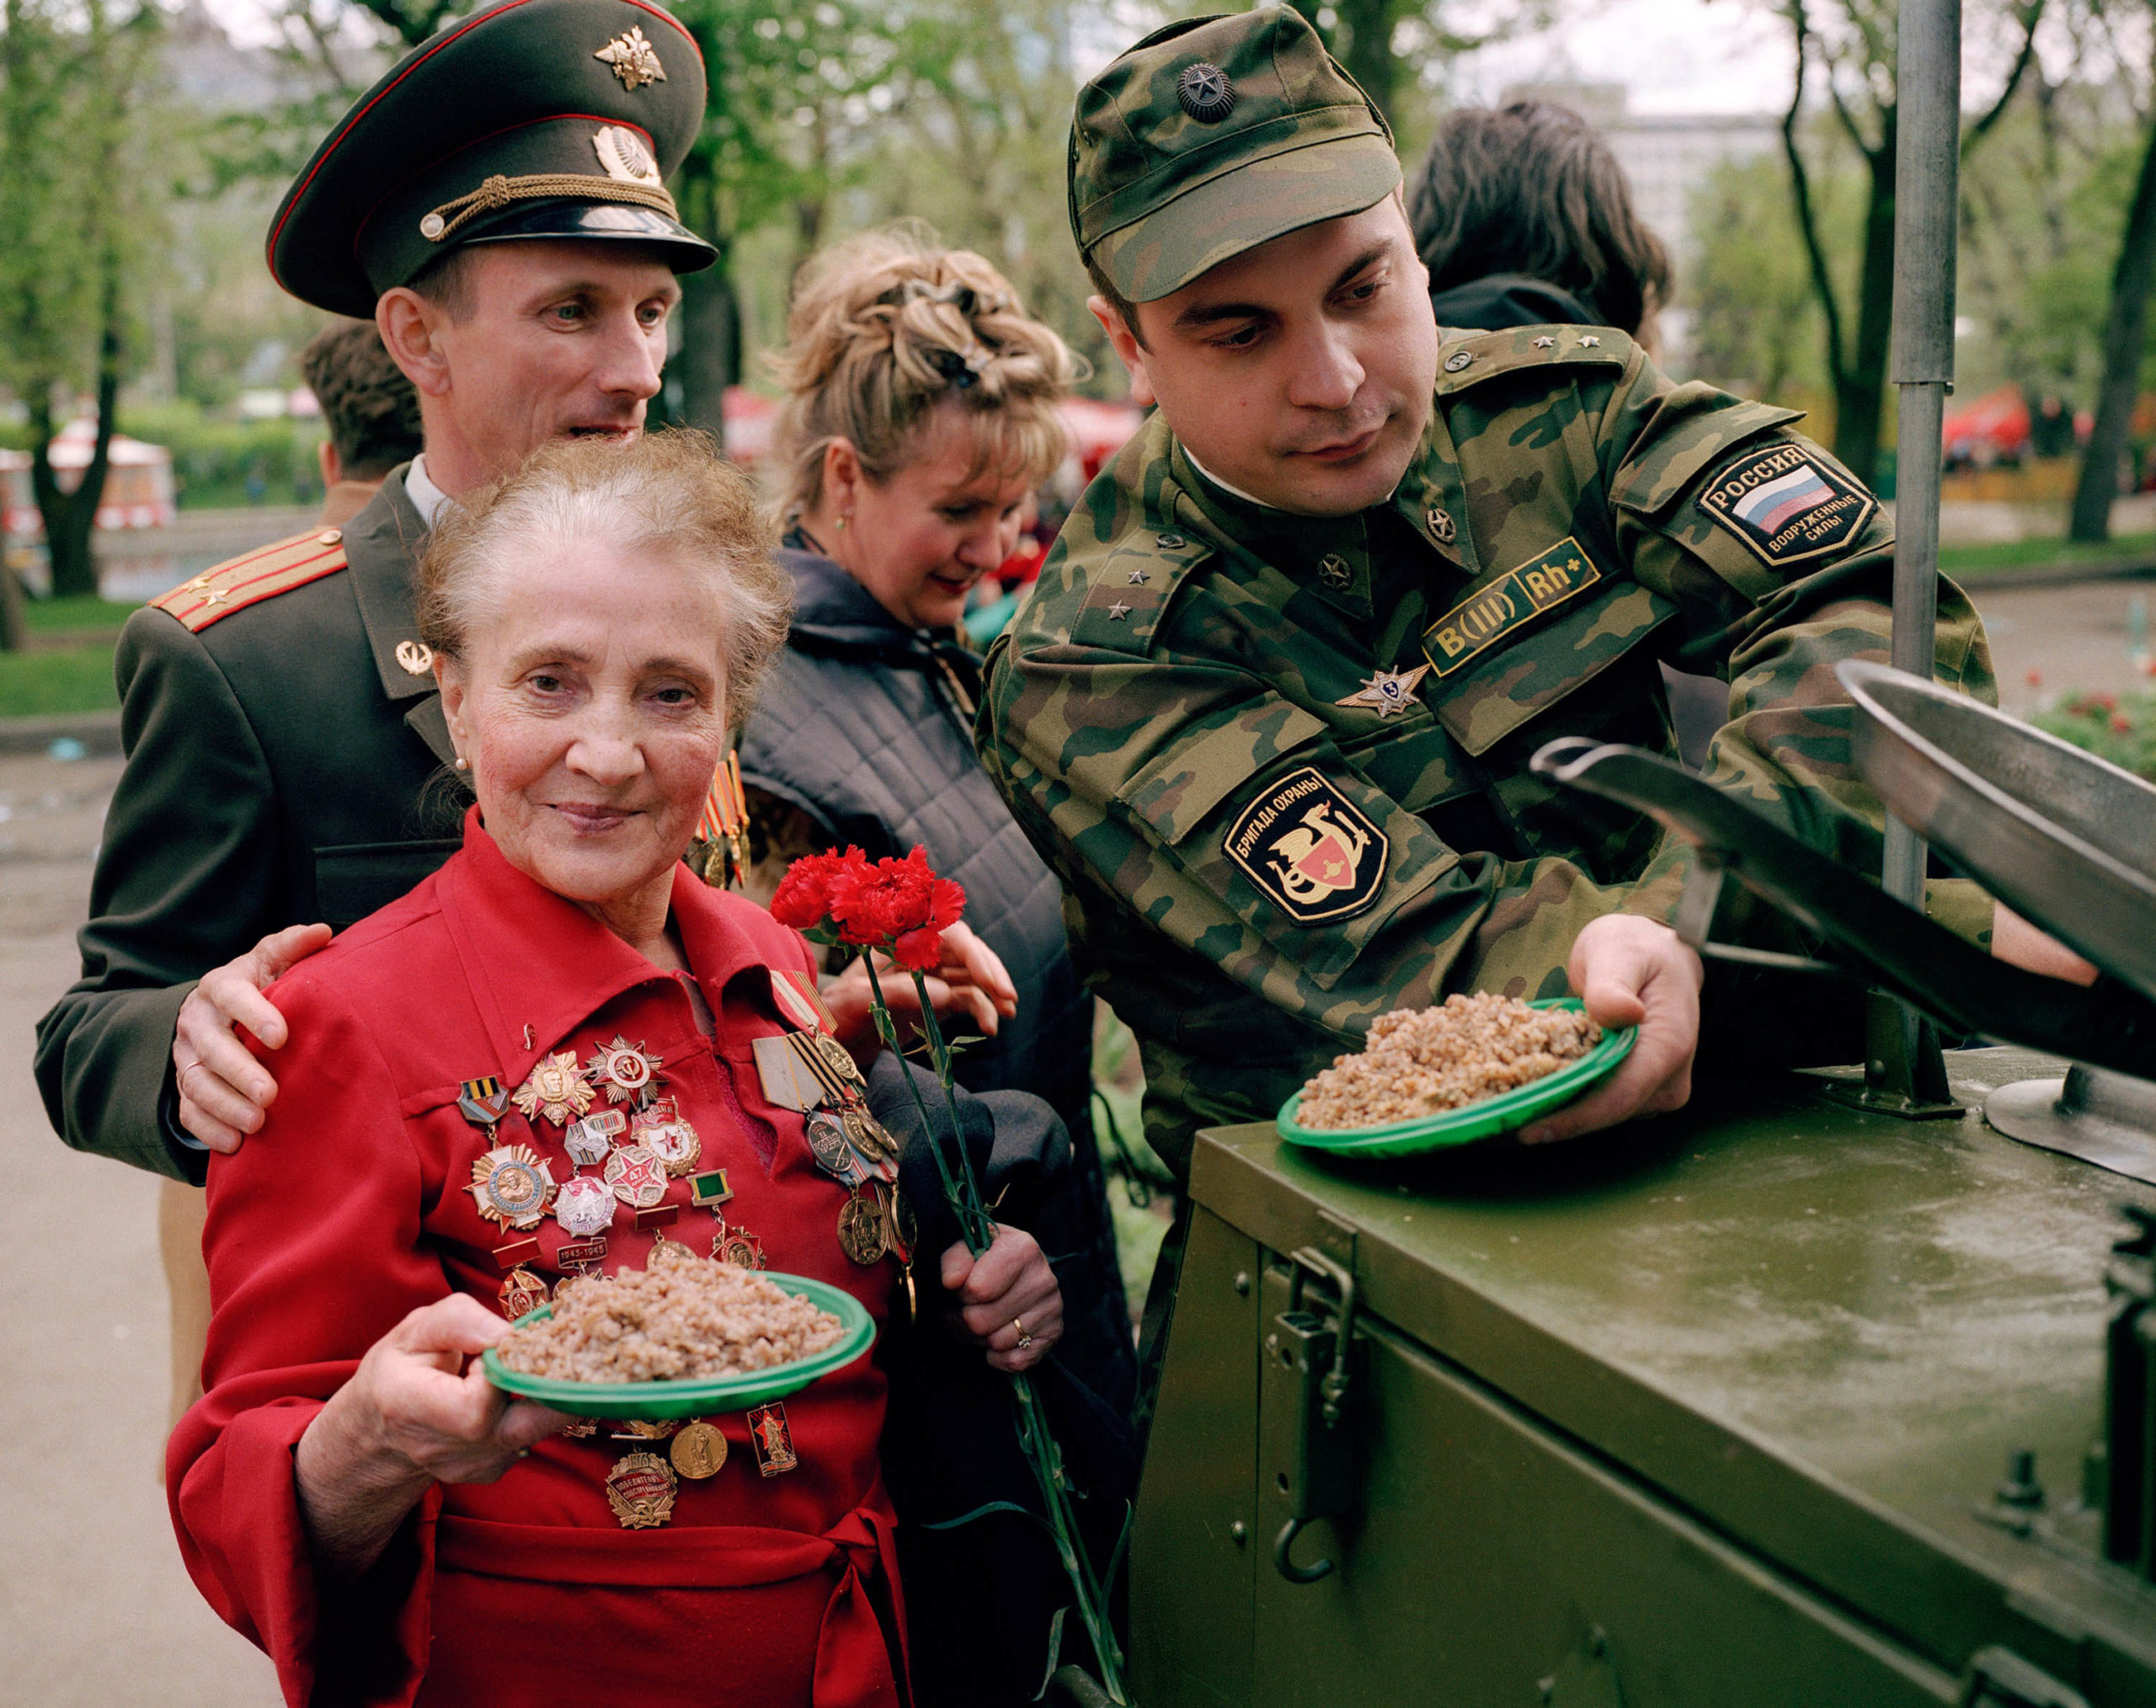 Russia, Moscow. Victory Day. The Russian army gives out food to the veterans.